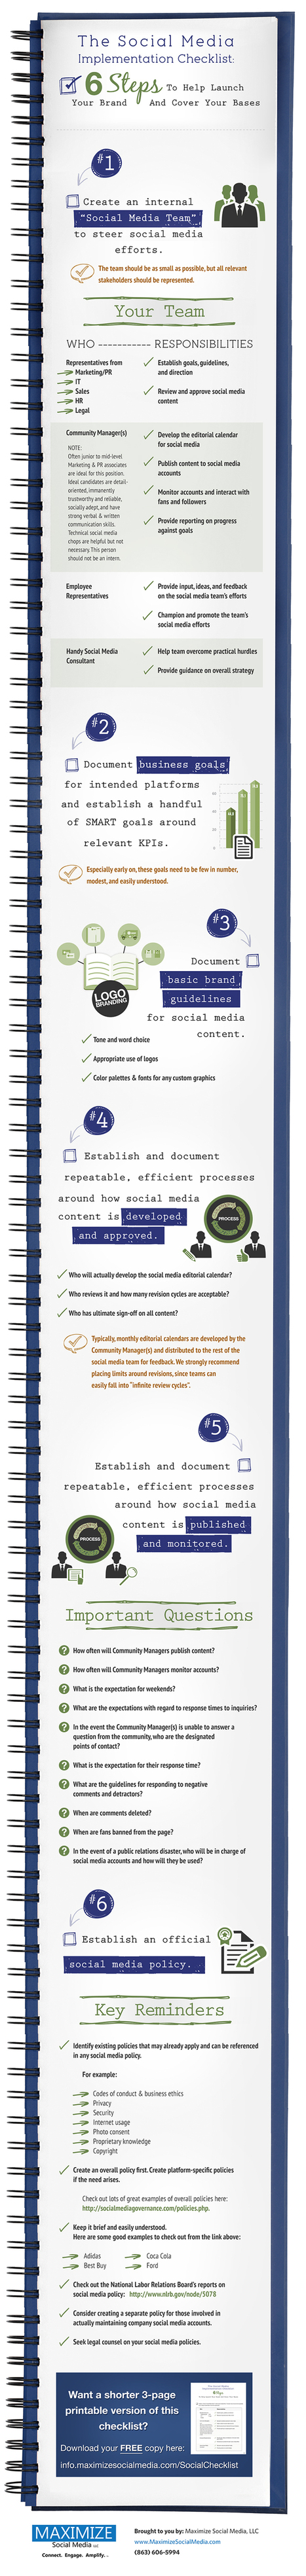 Social Media Implementation Checklist | SMM | Scoop.it